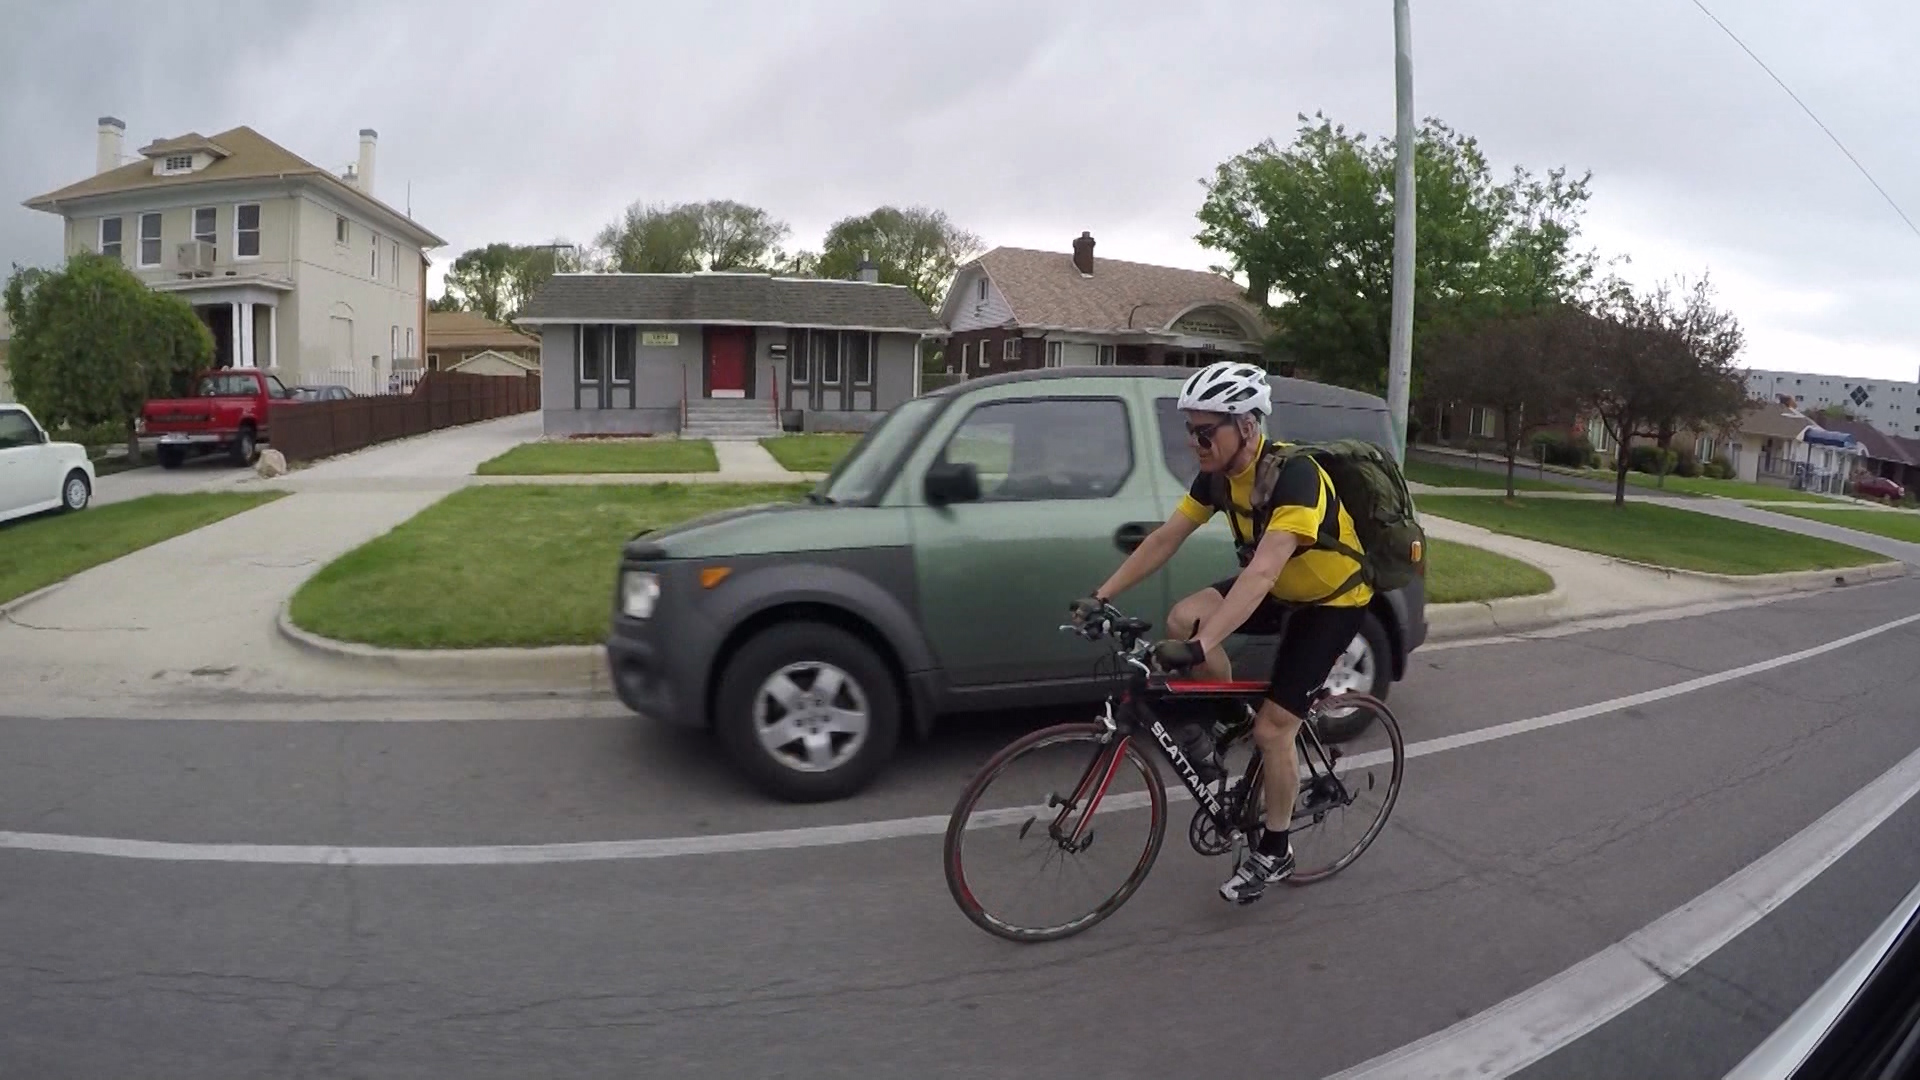 Cars vs. bikes: Who's to blame for crashes?